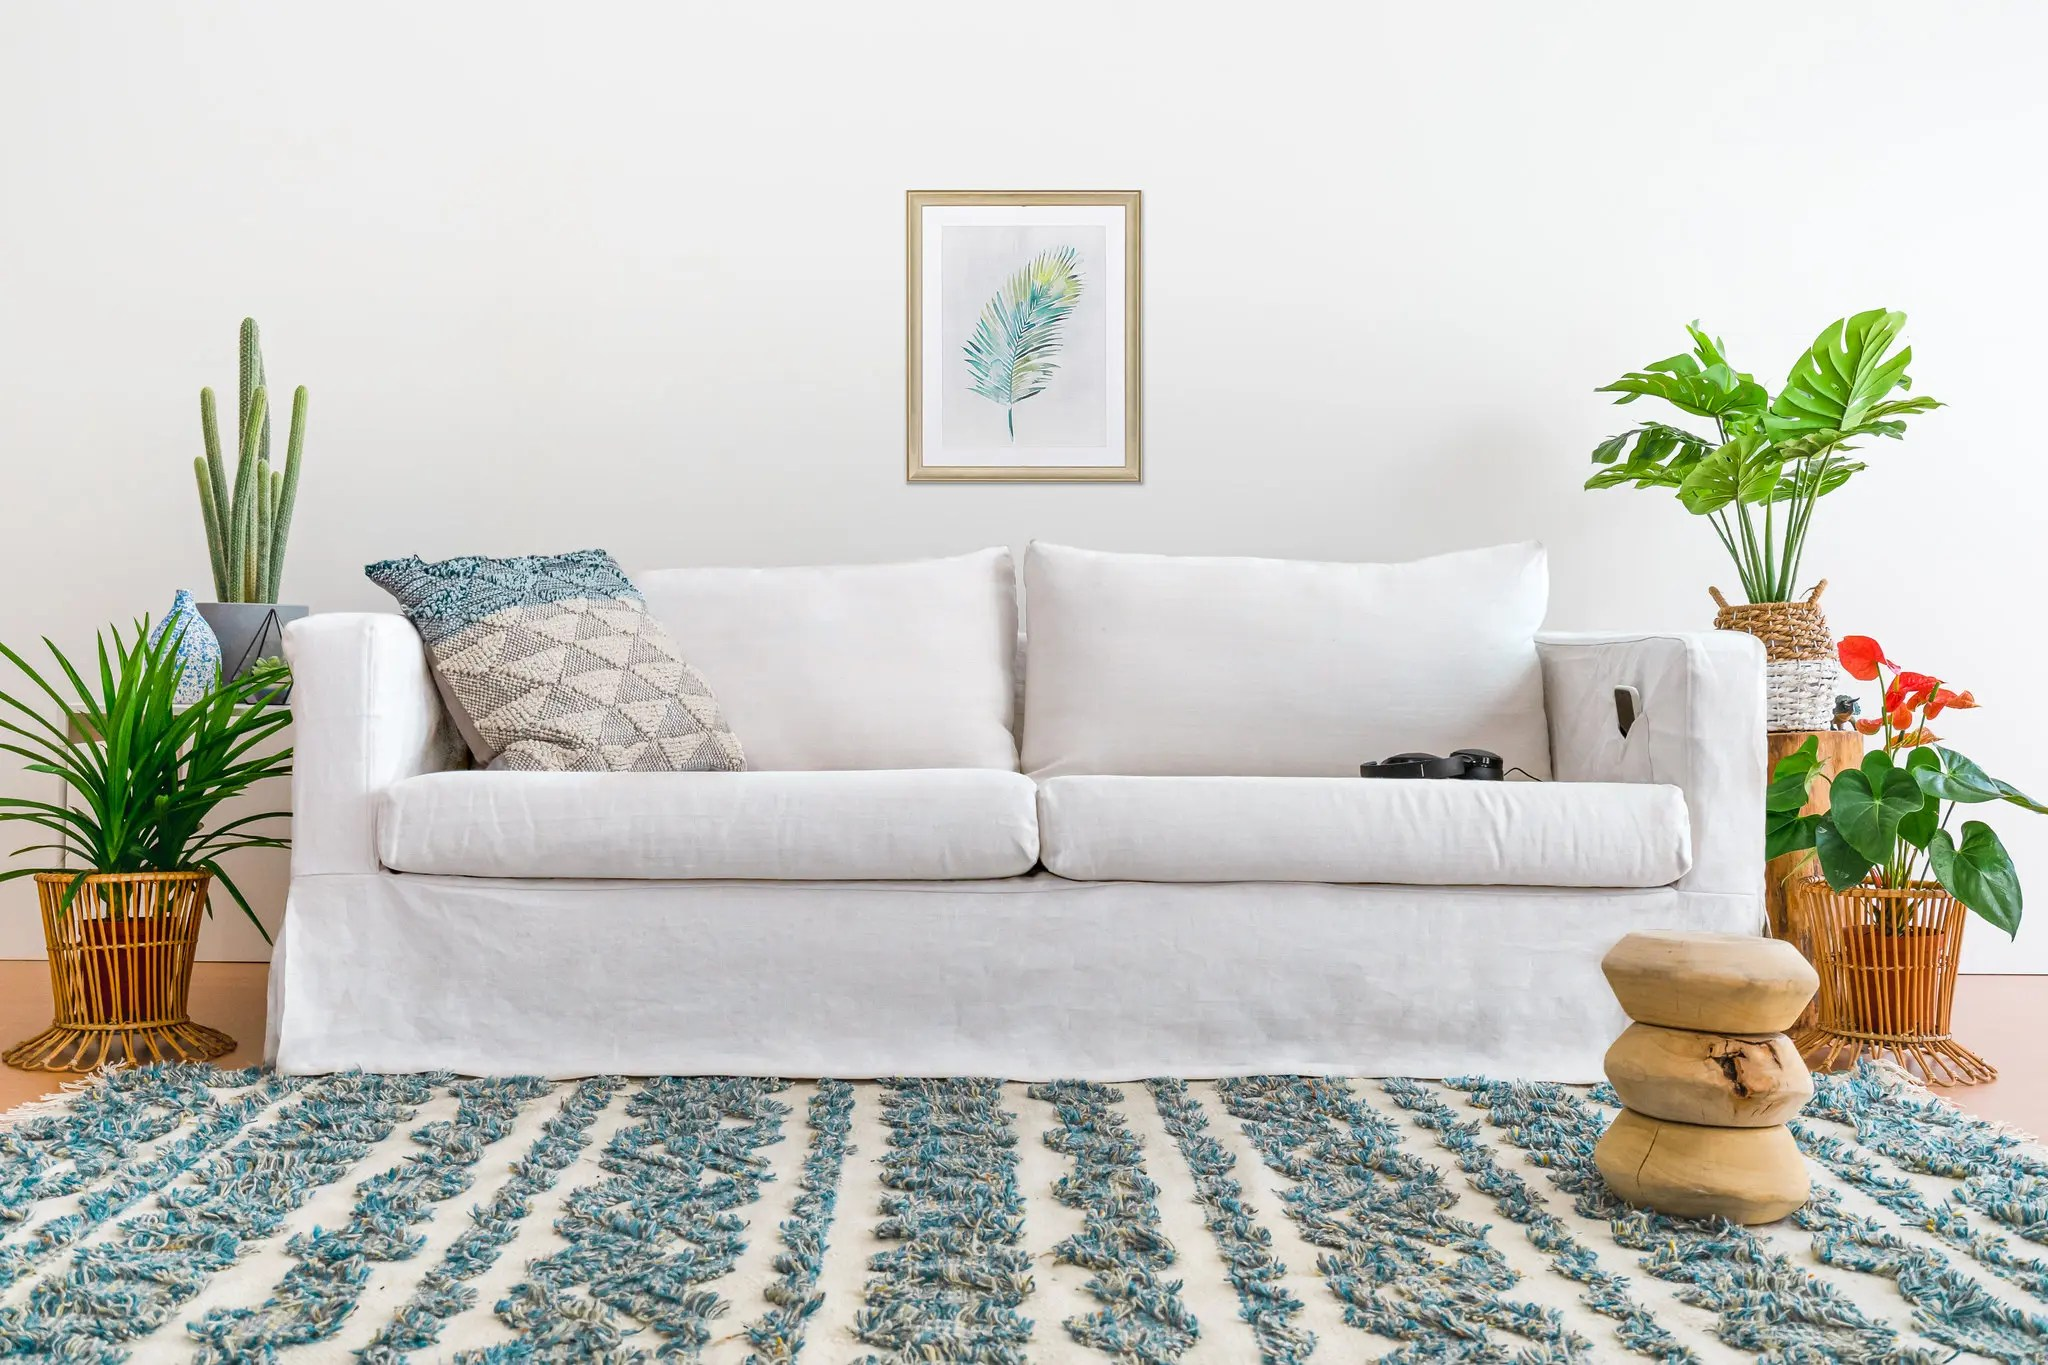 cost of reupholstery vs slipcovers